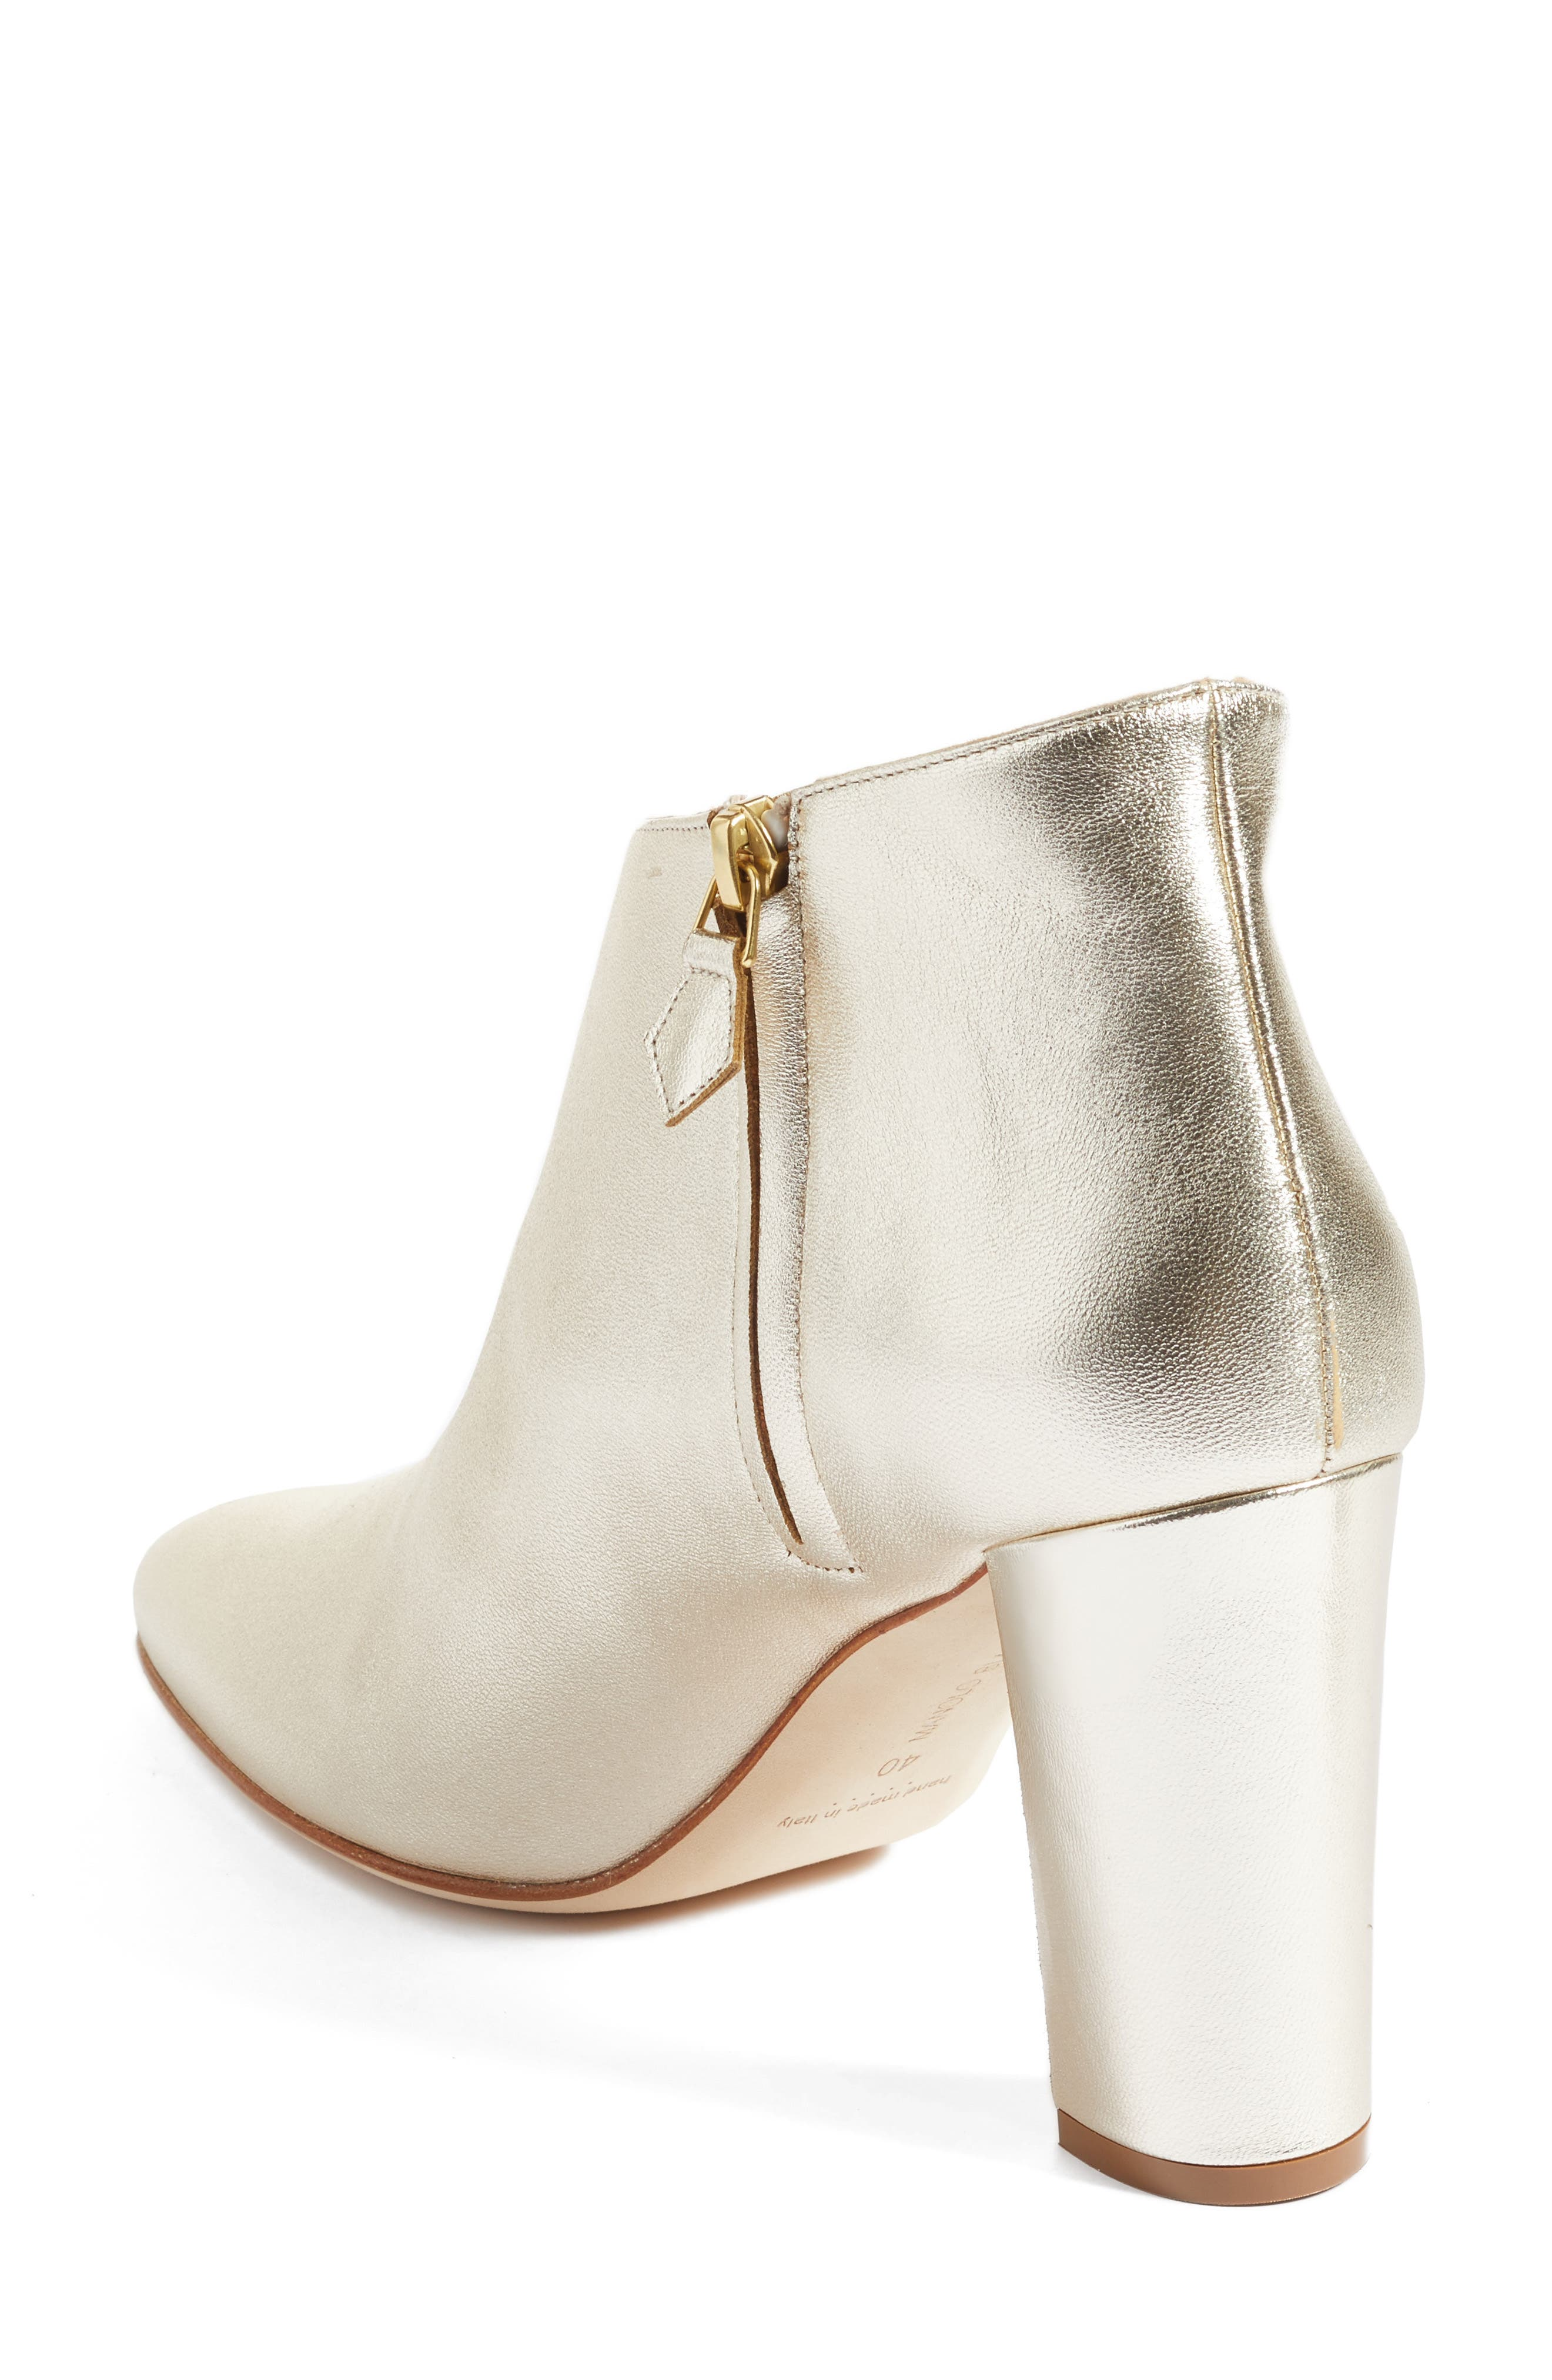 'Brusta'  Bootie,                             Alternate thumbnail 2, color,                             Light Gold Leather